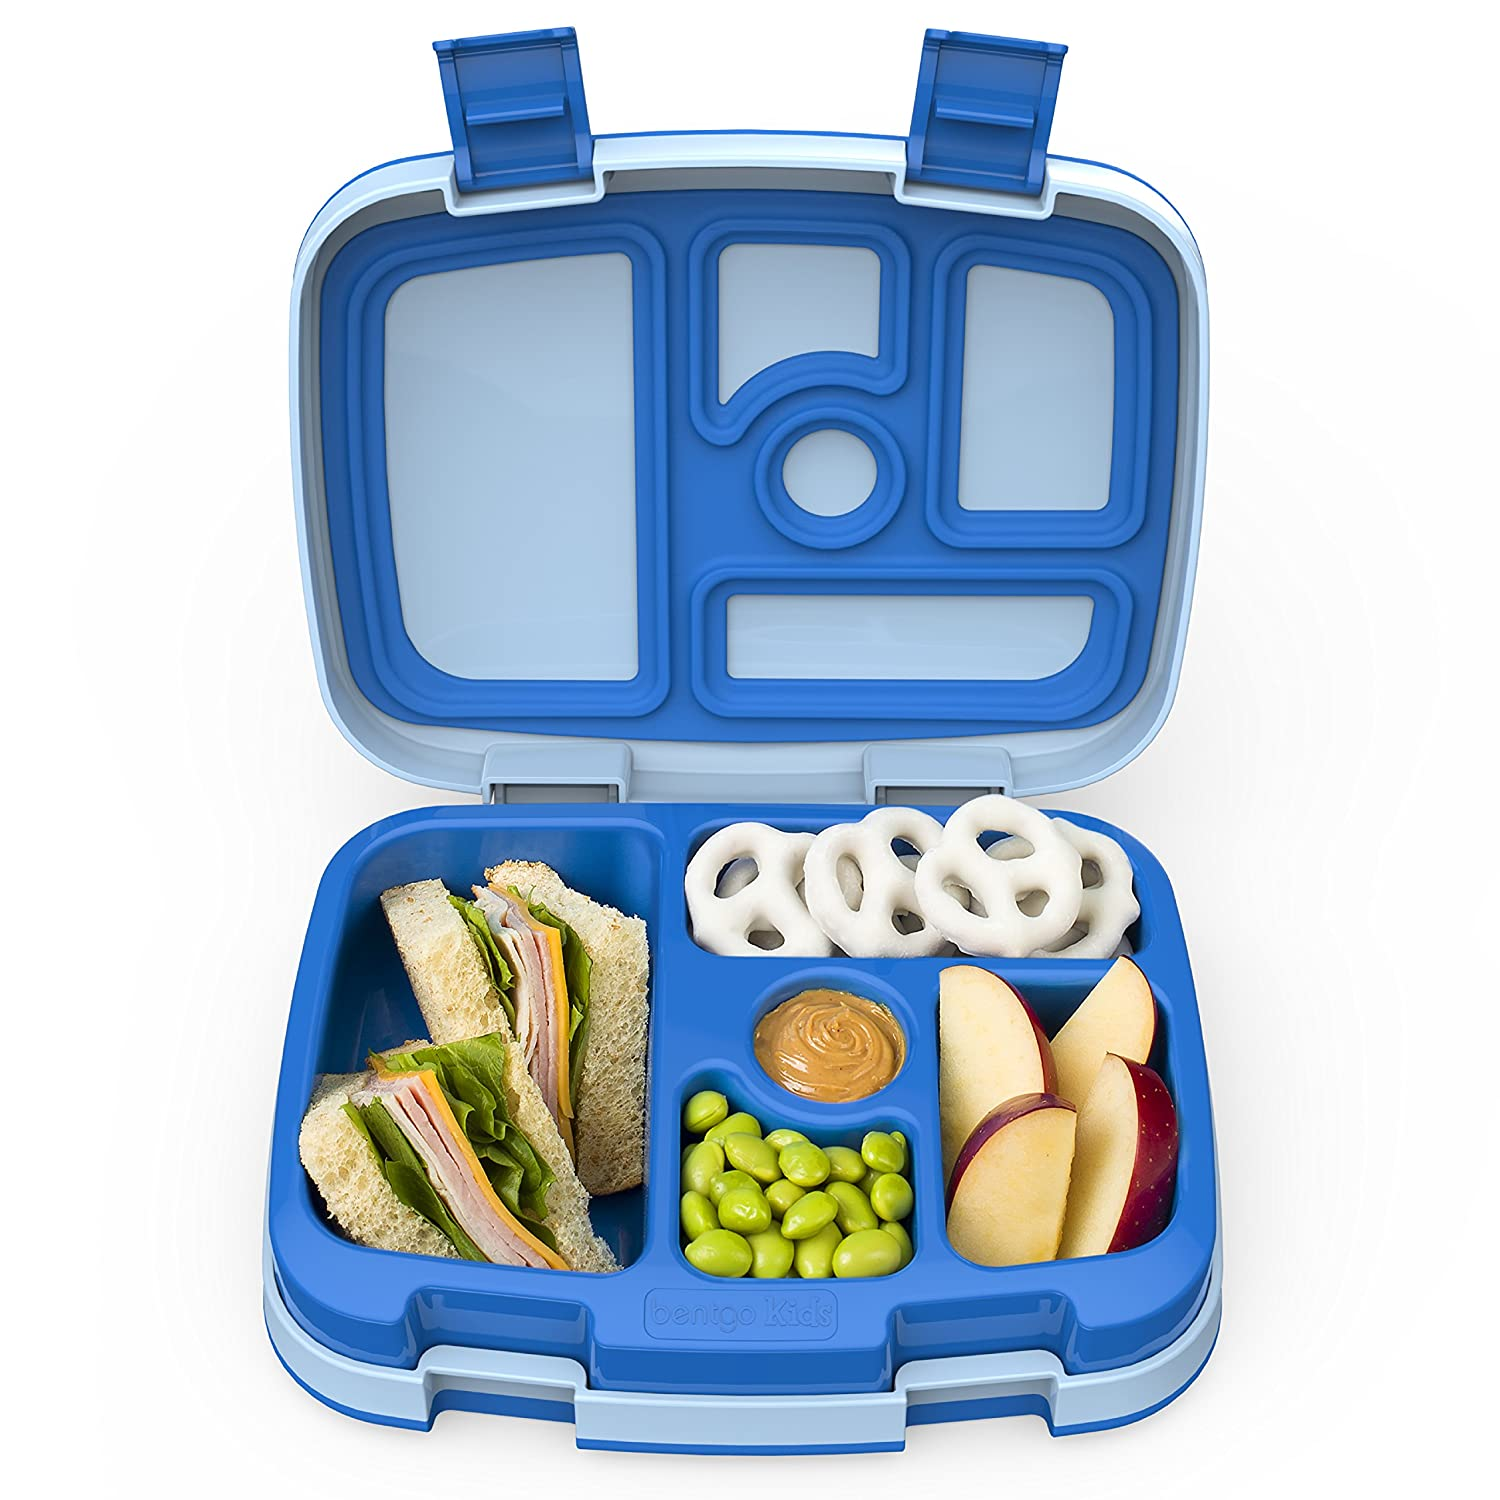 Bentgo Kids Childrens Lunch Box - Bento-styled Lunch Solution Offers Durable, Leak-proof, On-the-go Meal and Snack Packing (Blue) BGOKIDS-B